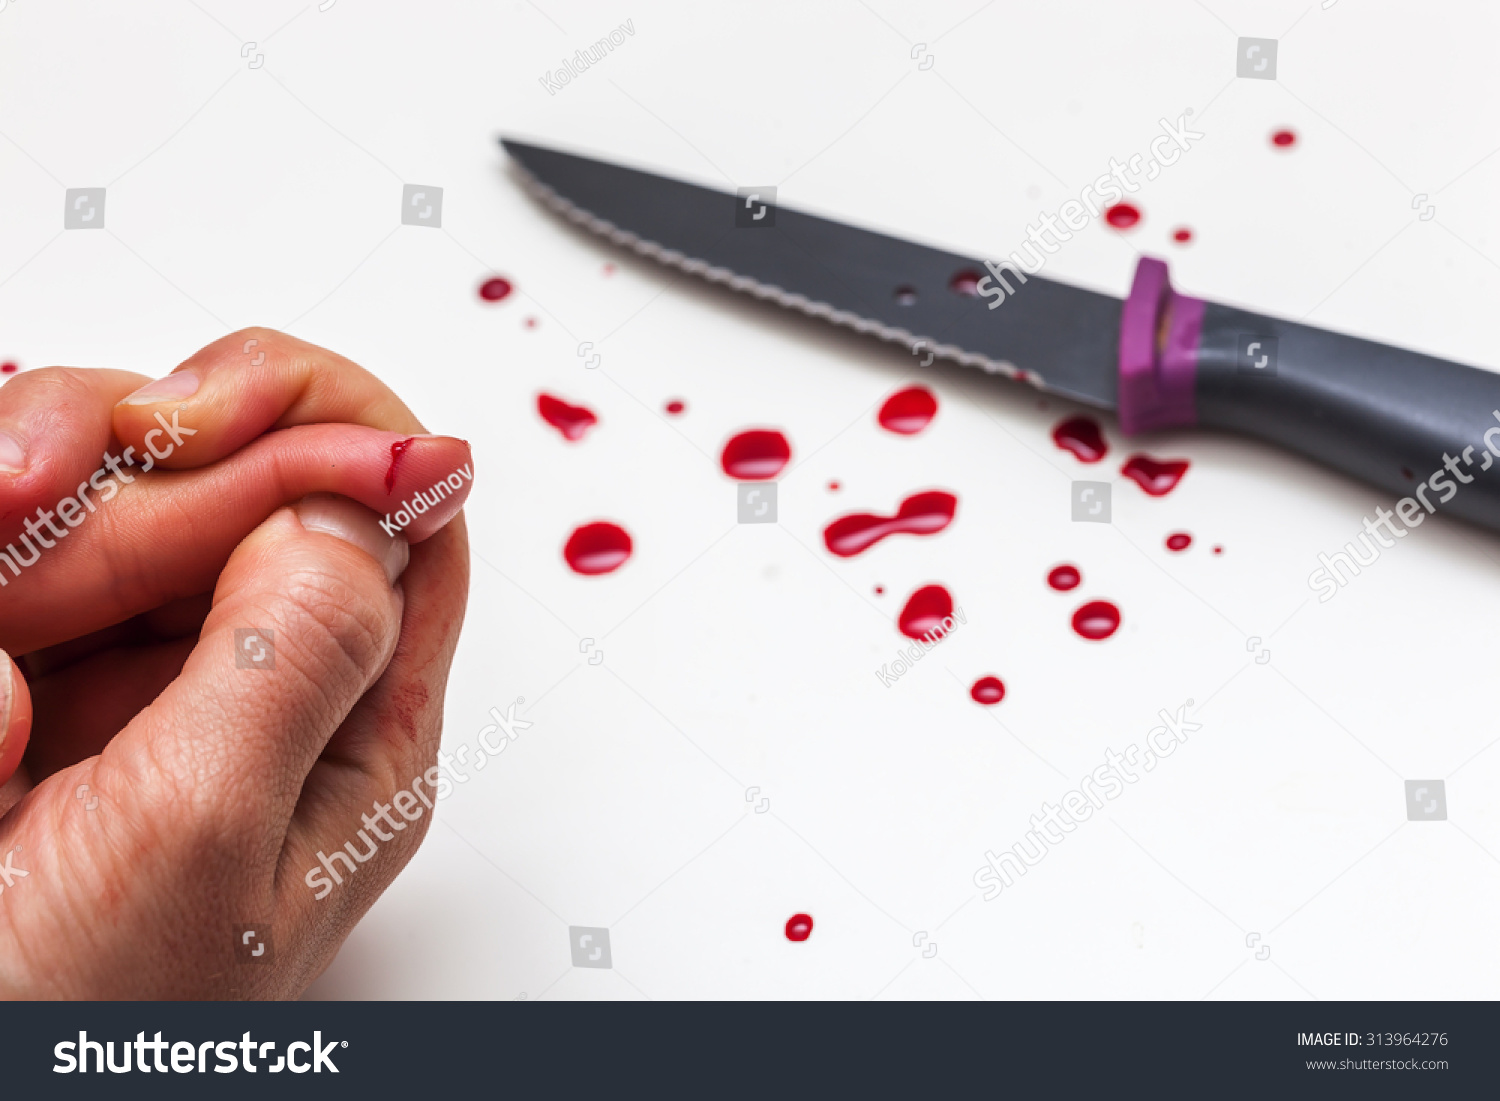 Cut Finger While Cooking Hand Knife Stock Photo (Royalty Free ...